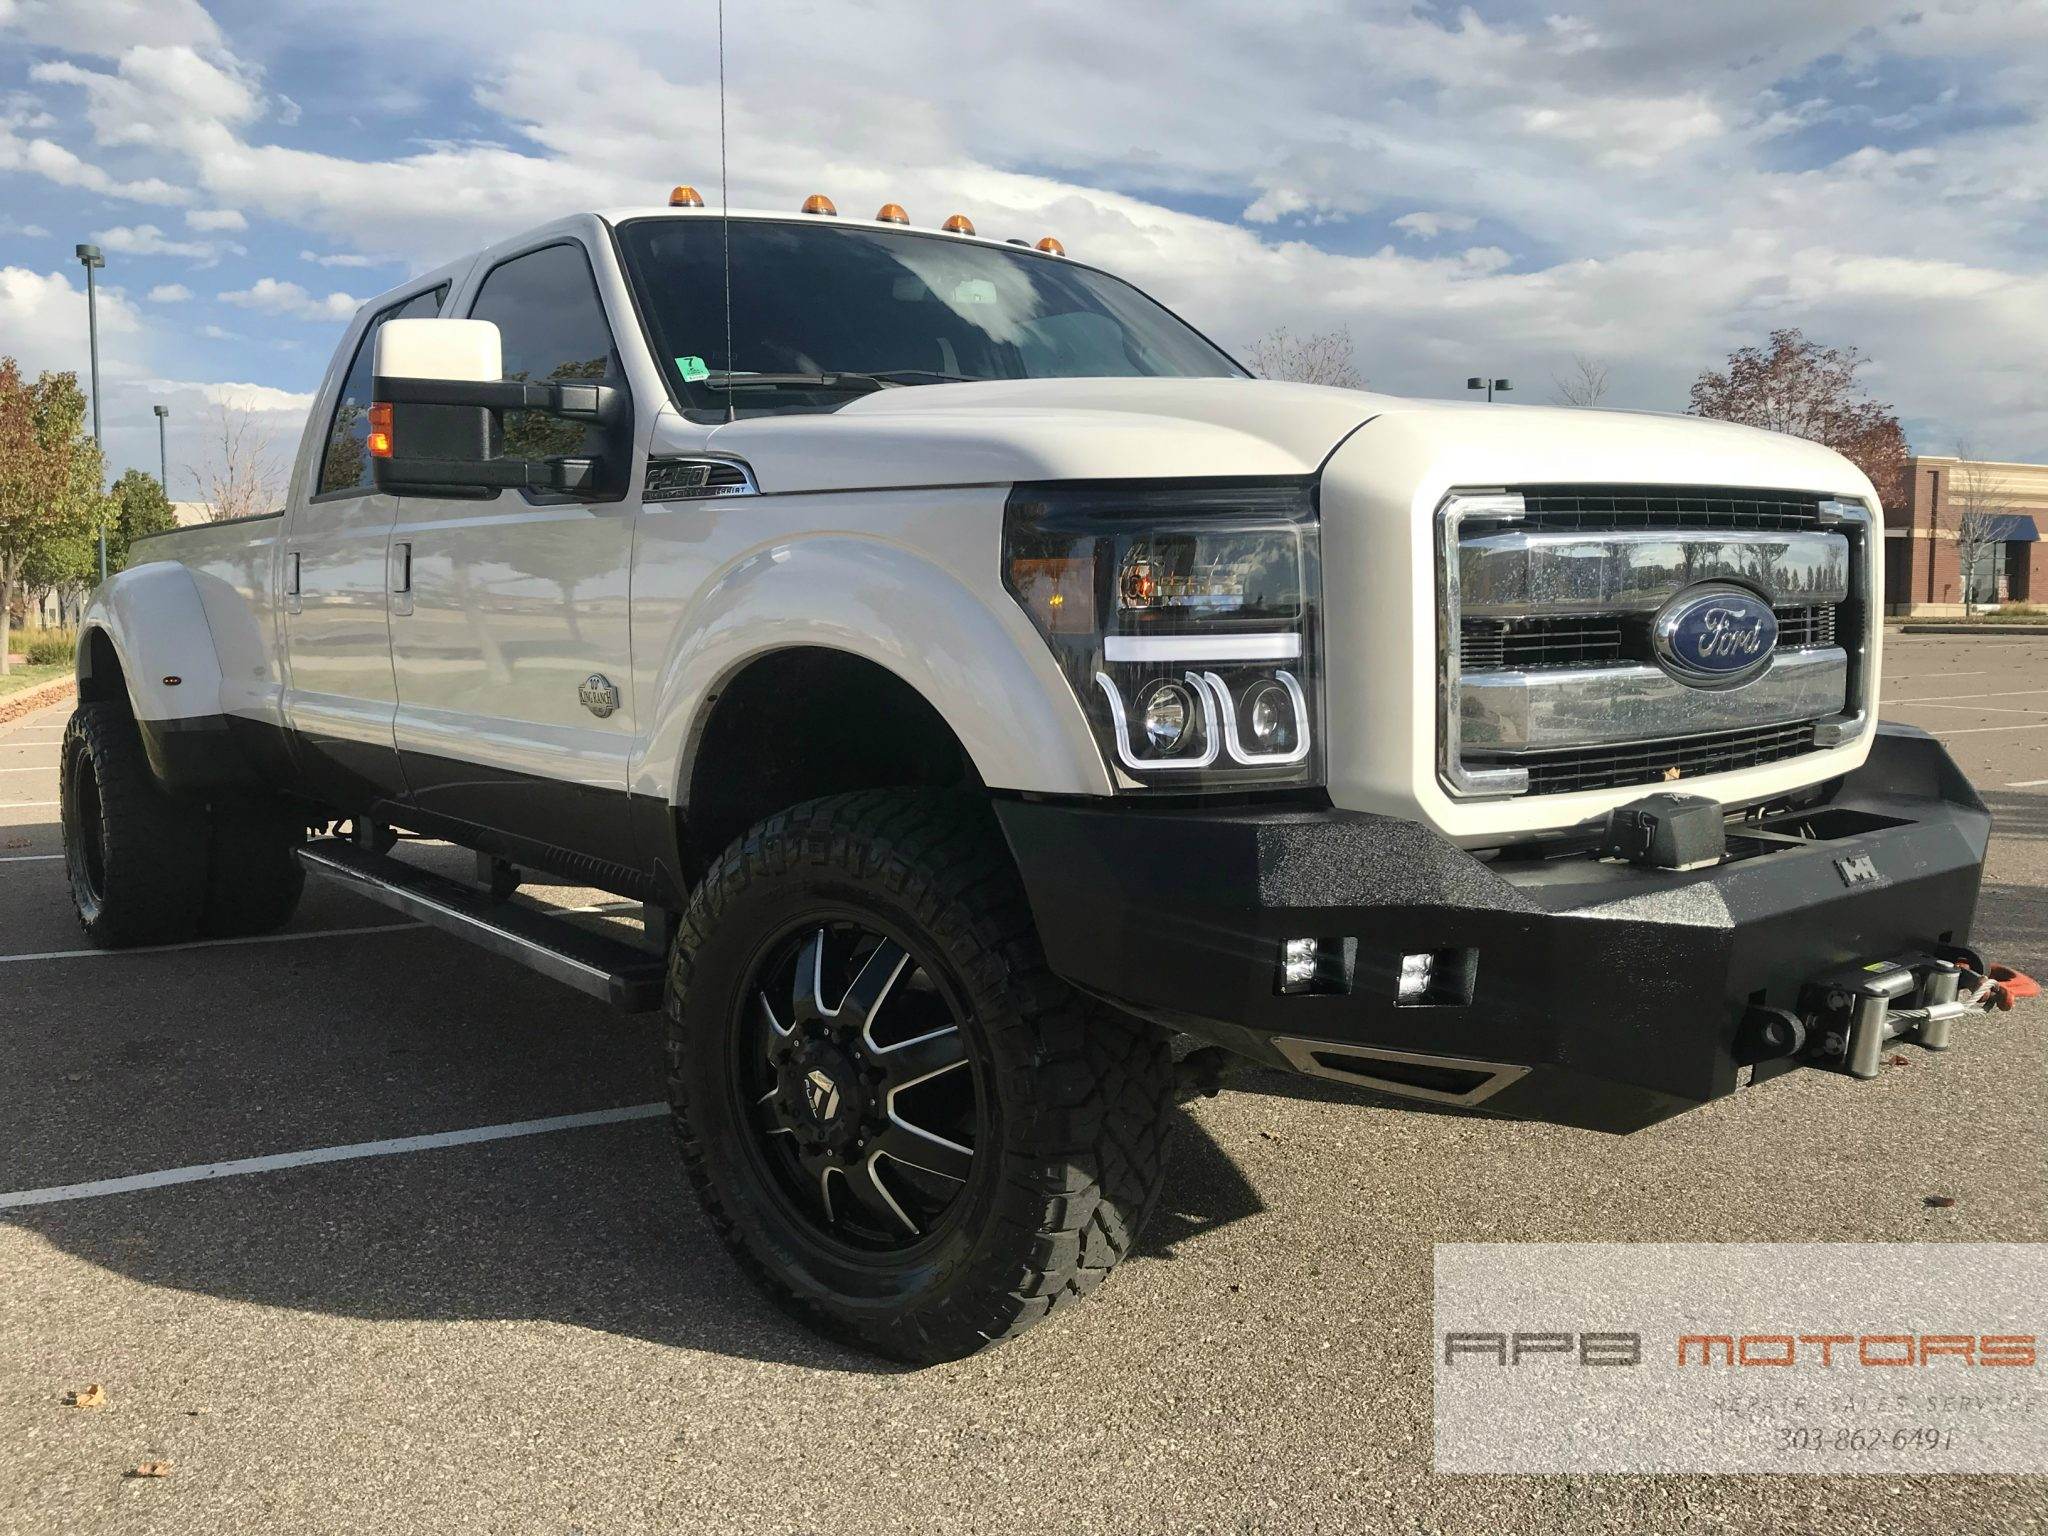 Up for sale is an immaculate 2016 ford f 350 super duty crew cab king ranch 4x4 pick up truck